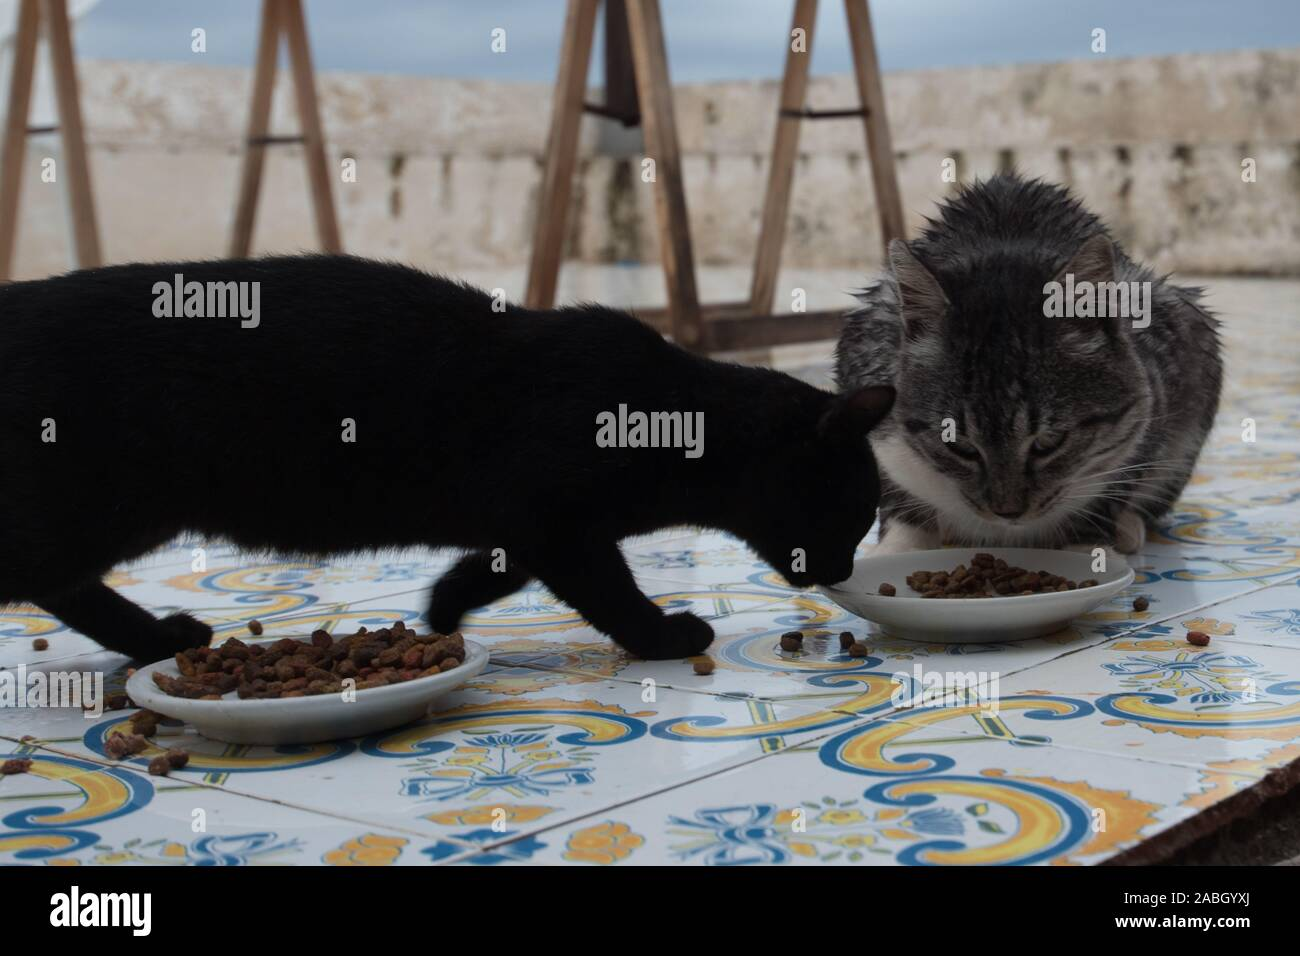 Cats eating from a bowl Stock Photo